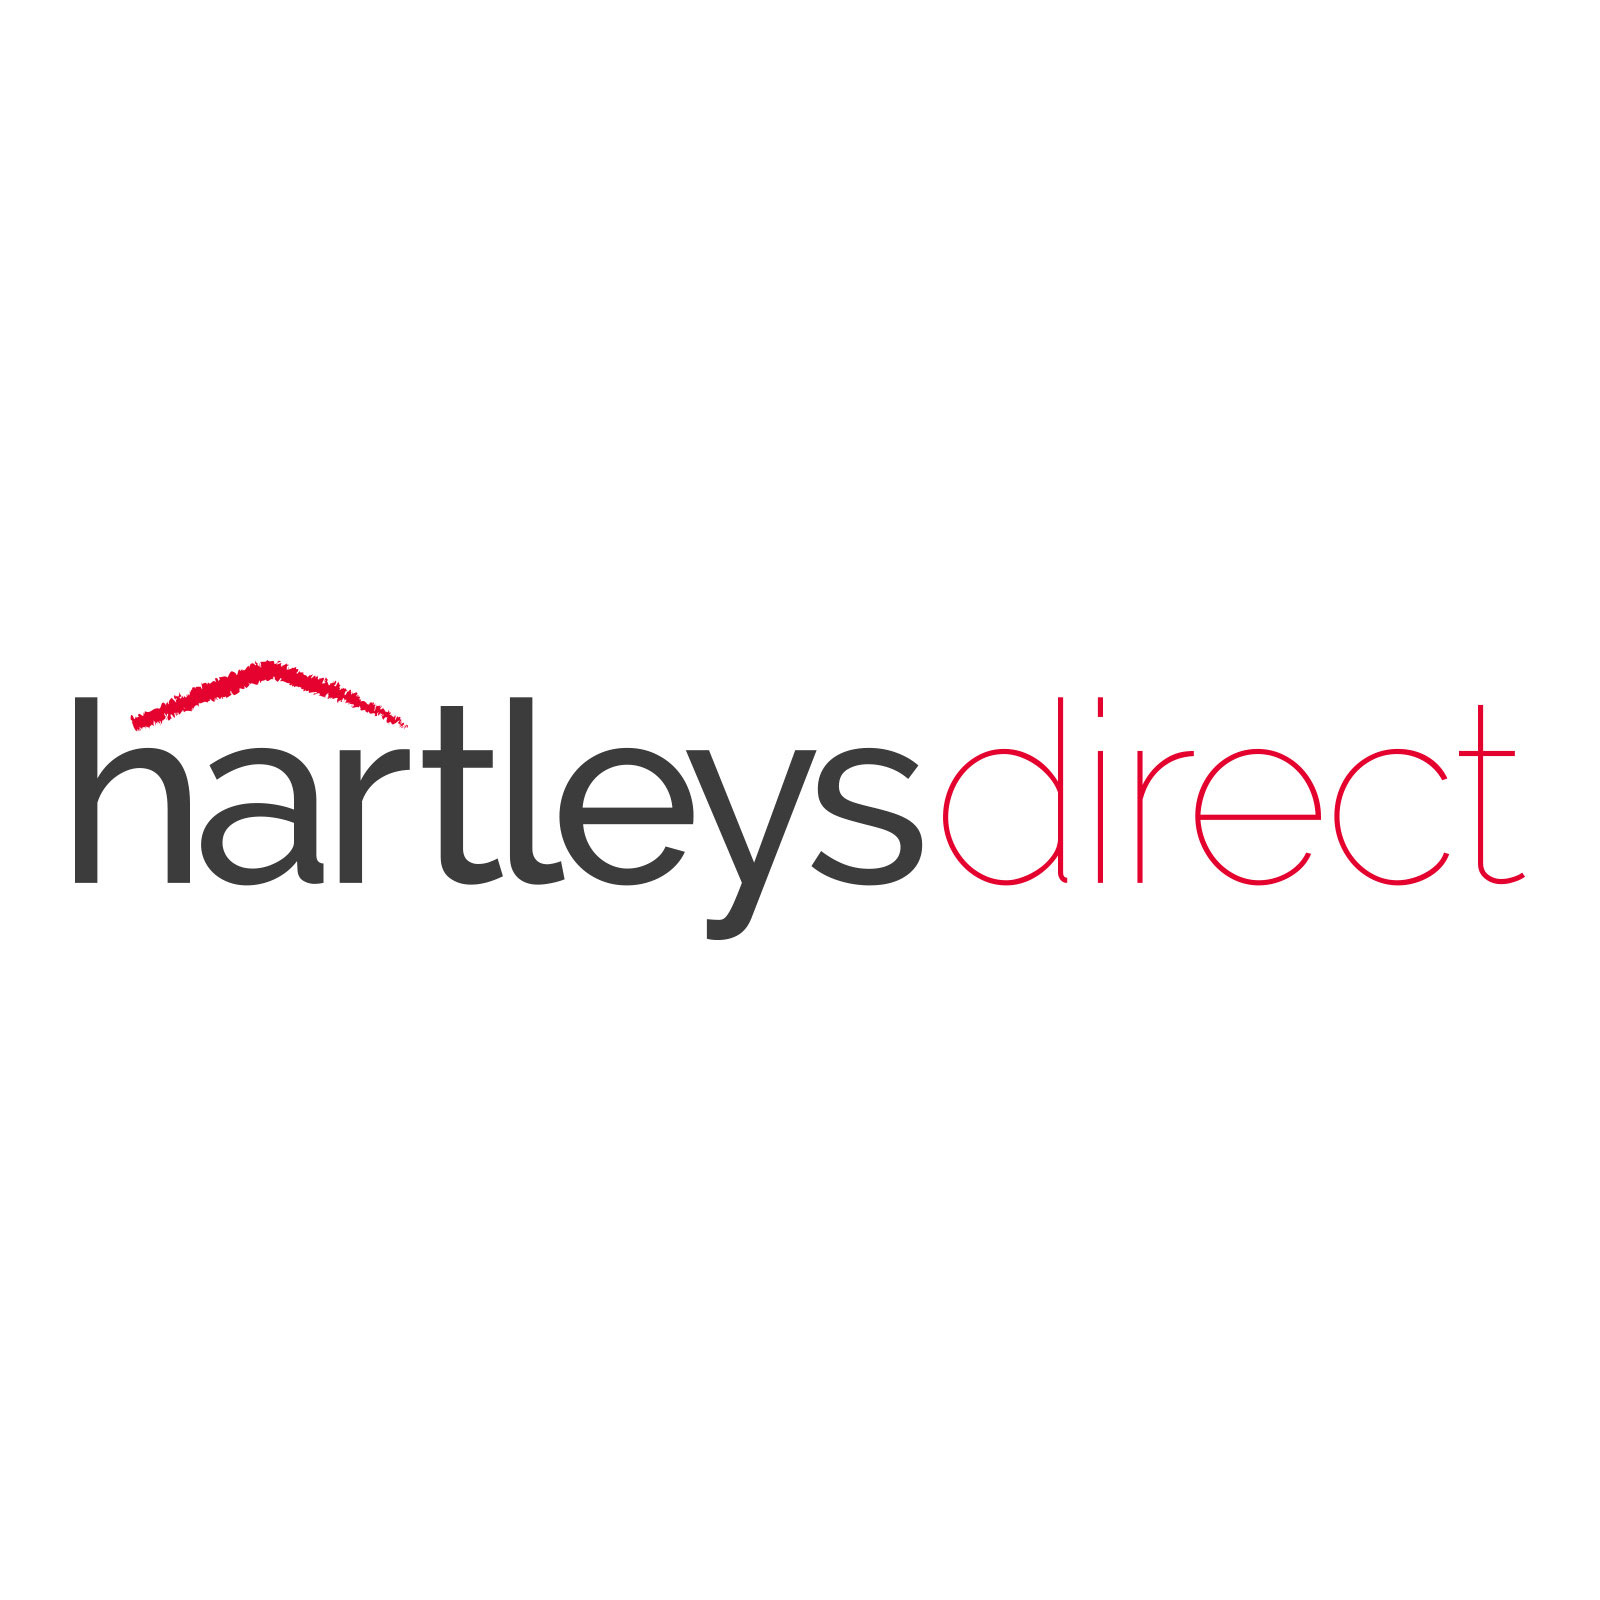 Hartleys-3-Drawer-White-Retro-Bedside%20Table-with-Handles-on-White-Background.jpg